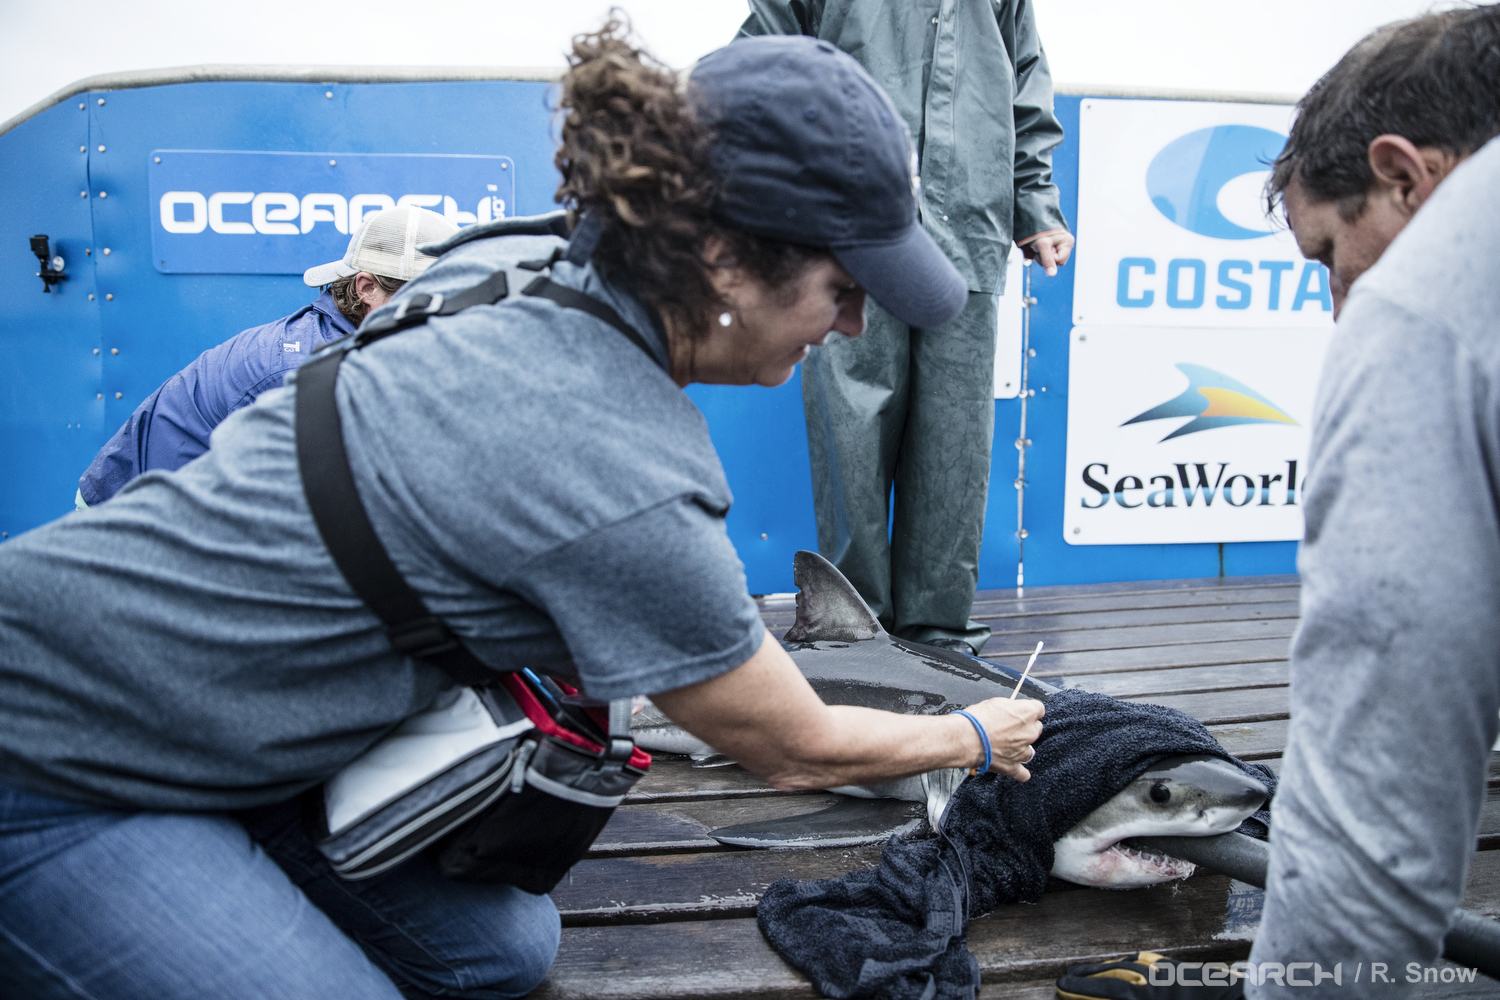 SeaWorld and OCEARCH Join Forces to Protect World's Oceans and Marine Animals